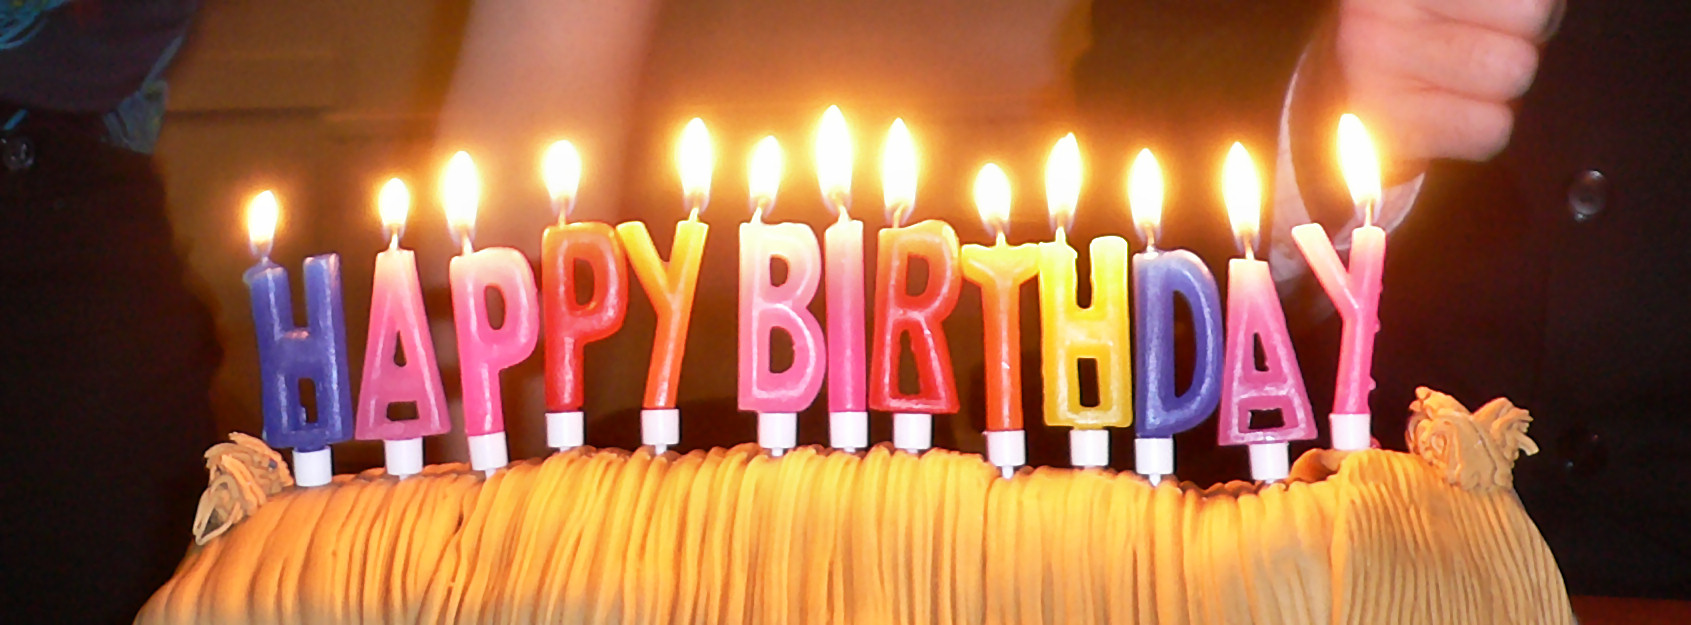 Birthday_candles-1